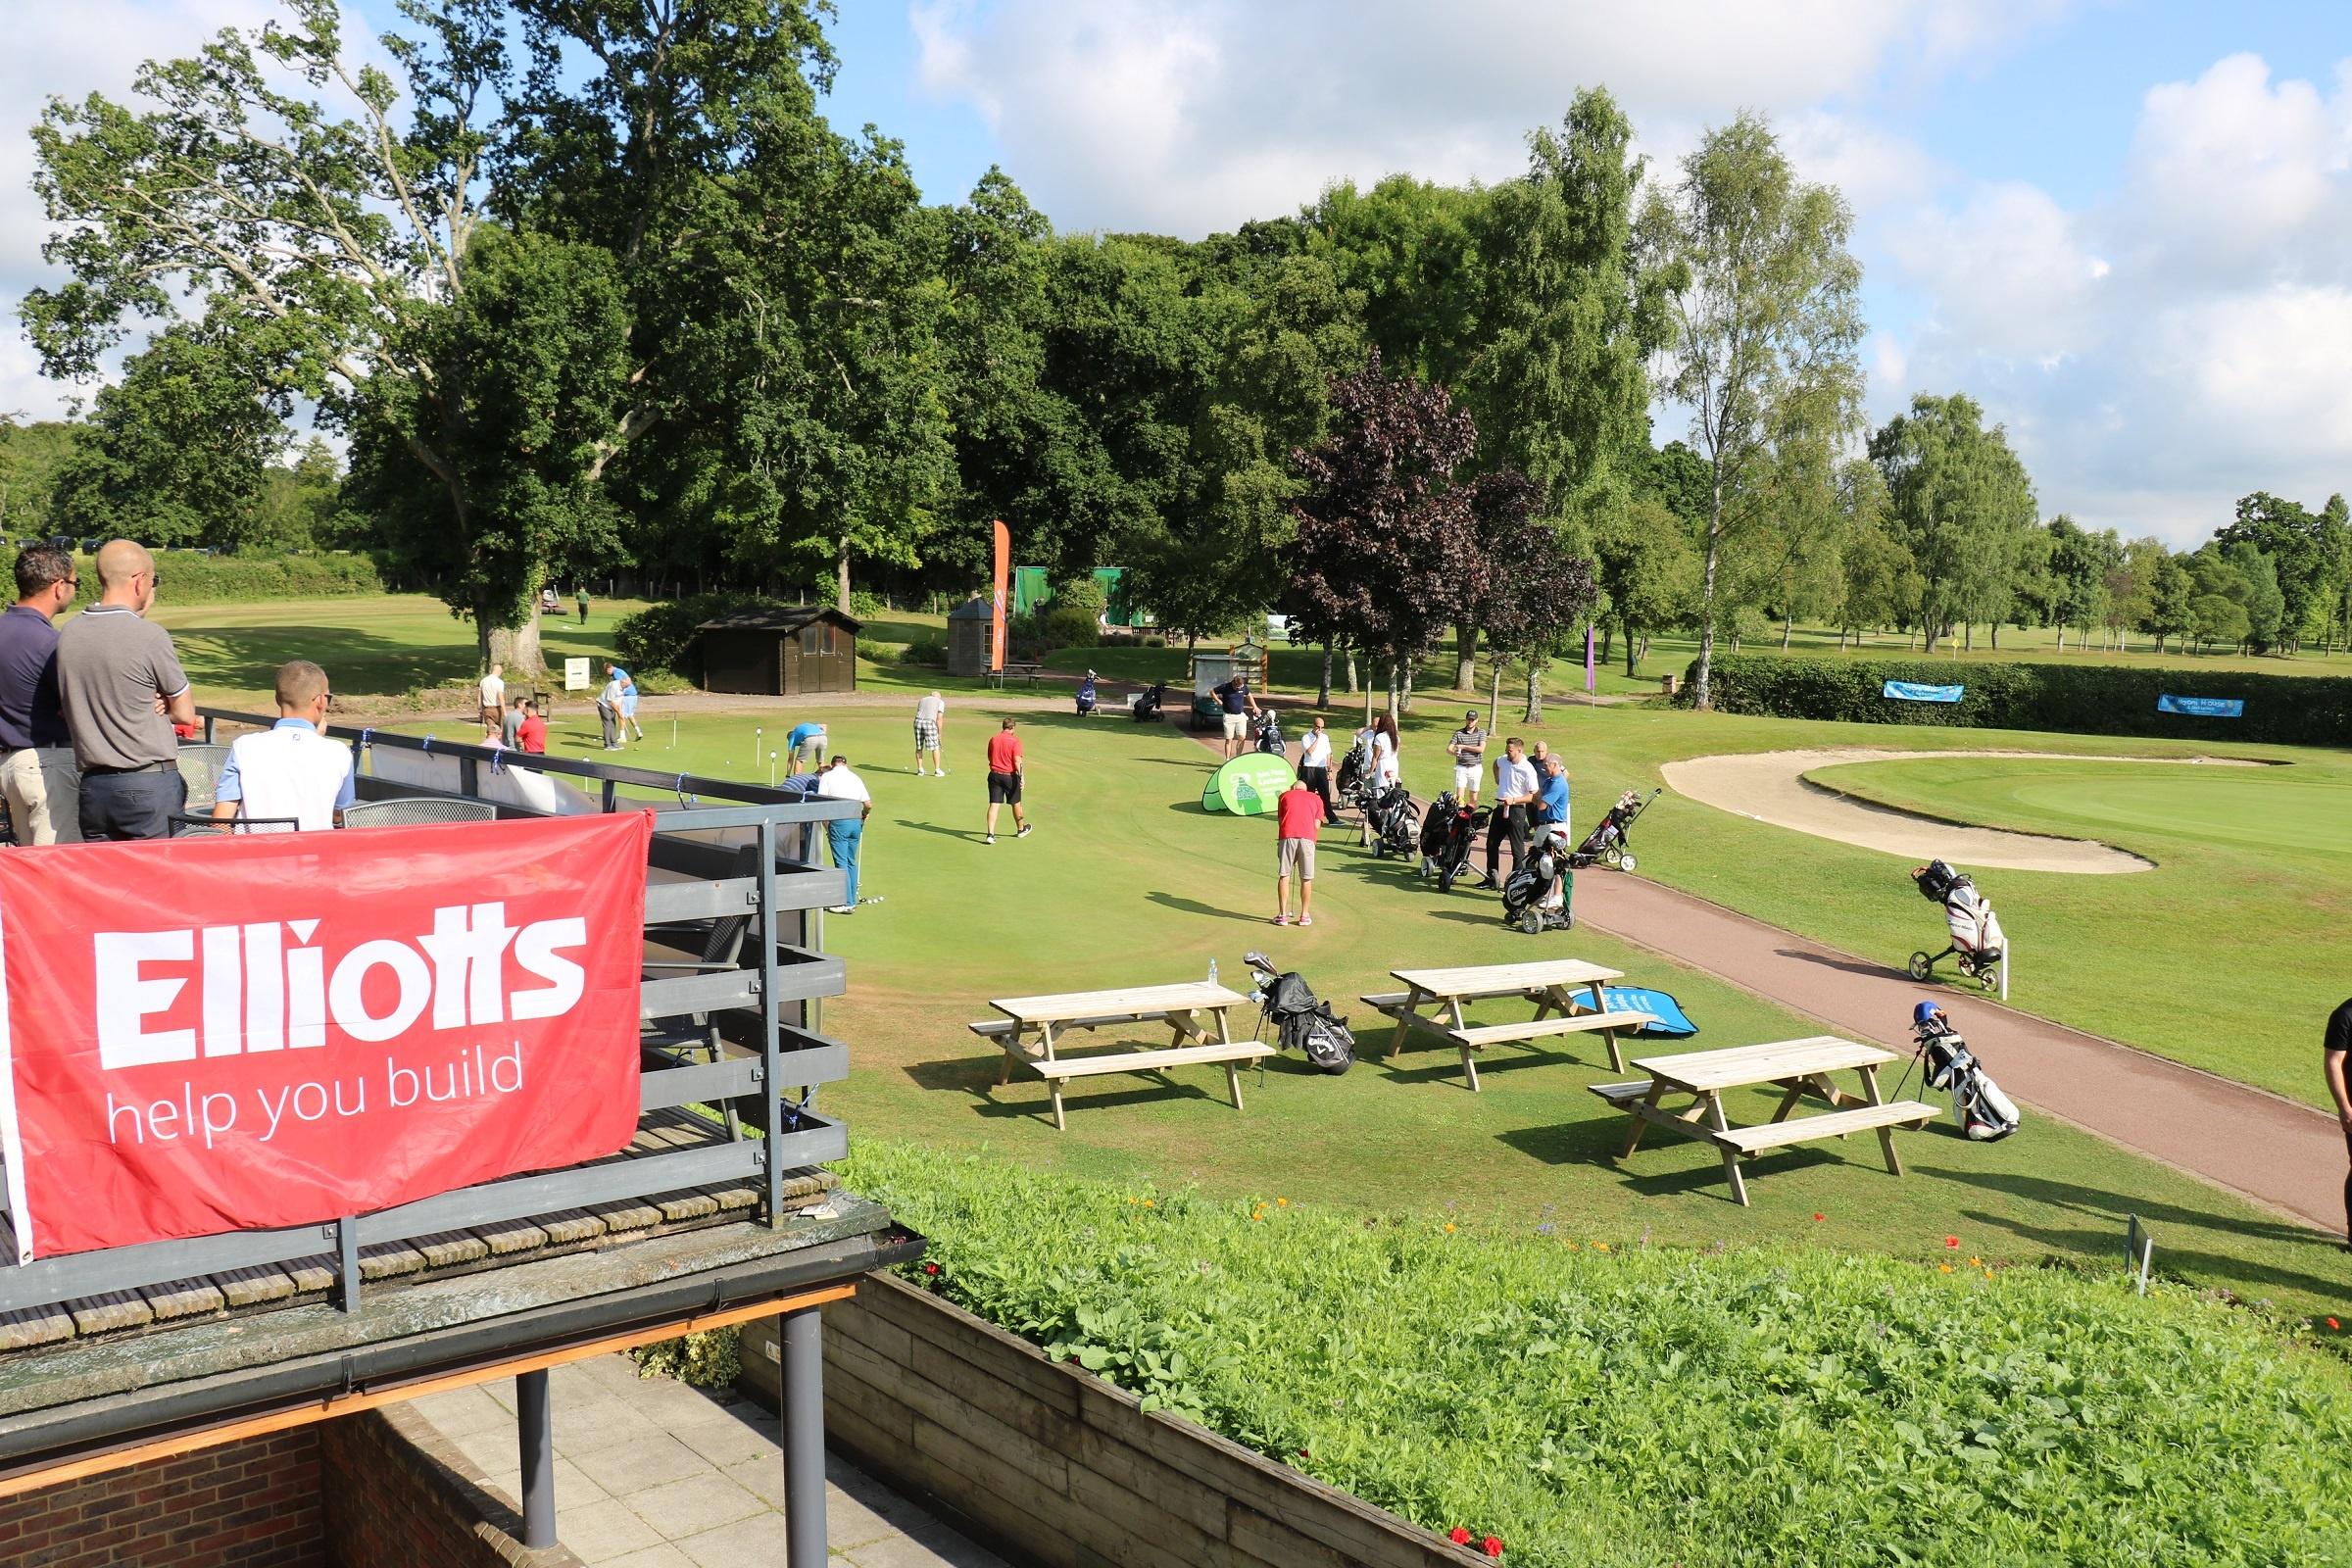 Elliotts charity golf day 2019 - 1